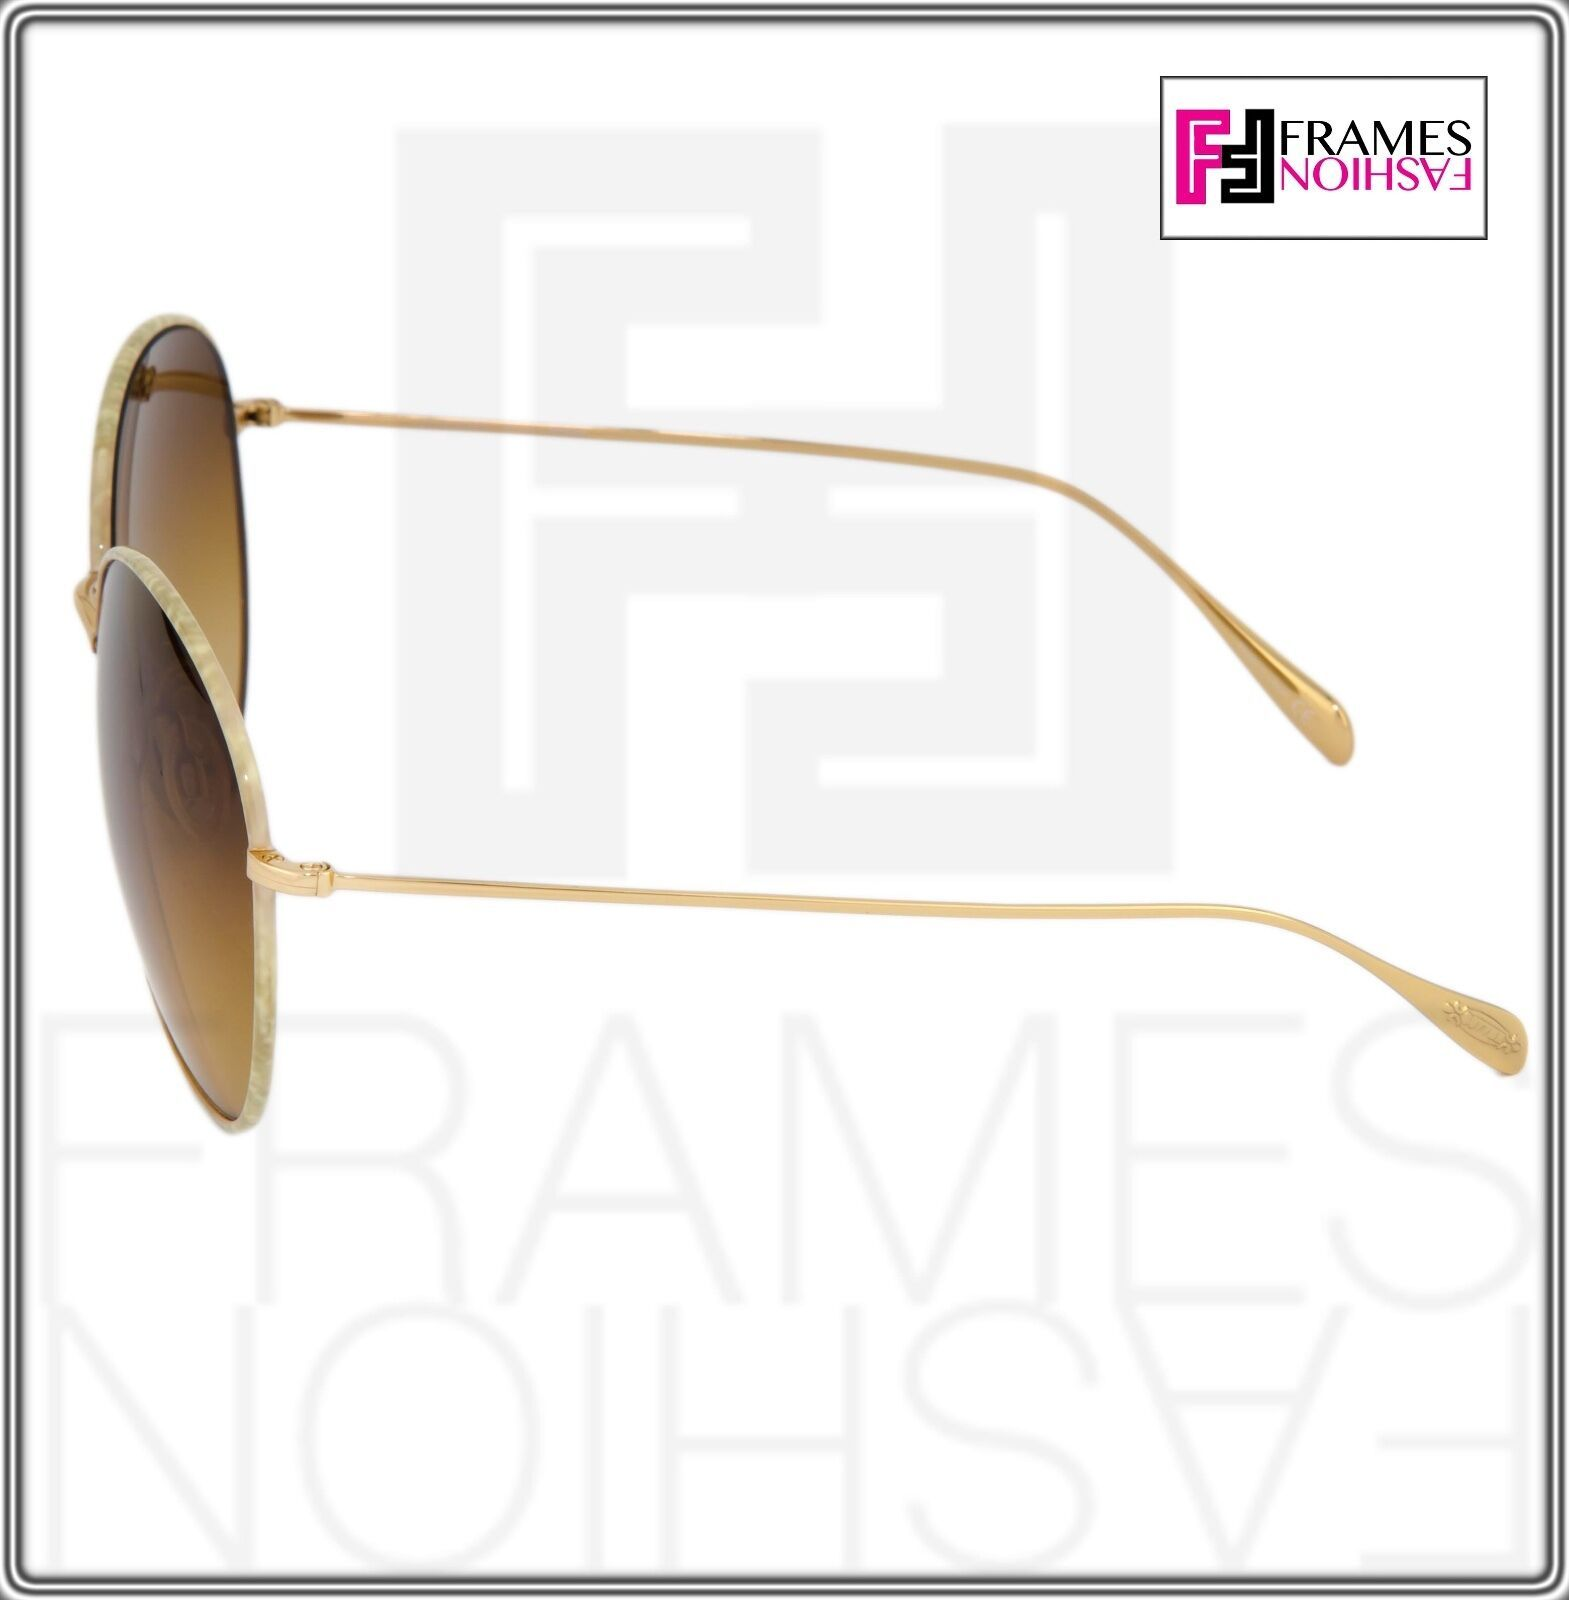 OLIVER PEOPLES BLONDELL 1102 Gold Titanium Brown Beige Polarized Sunglass 1102ST image 4